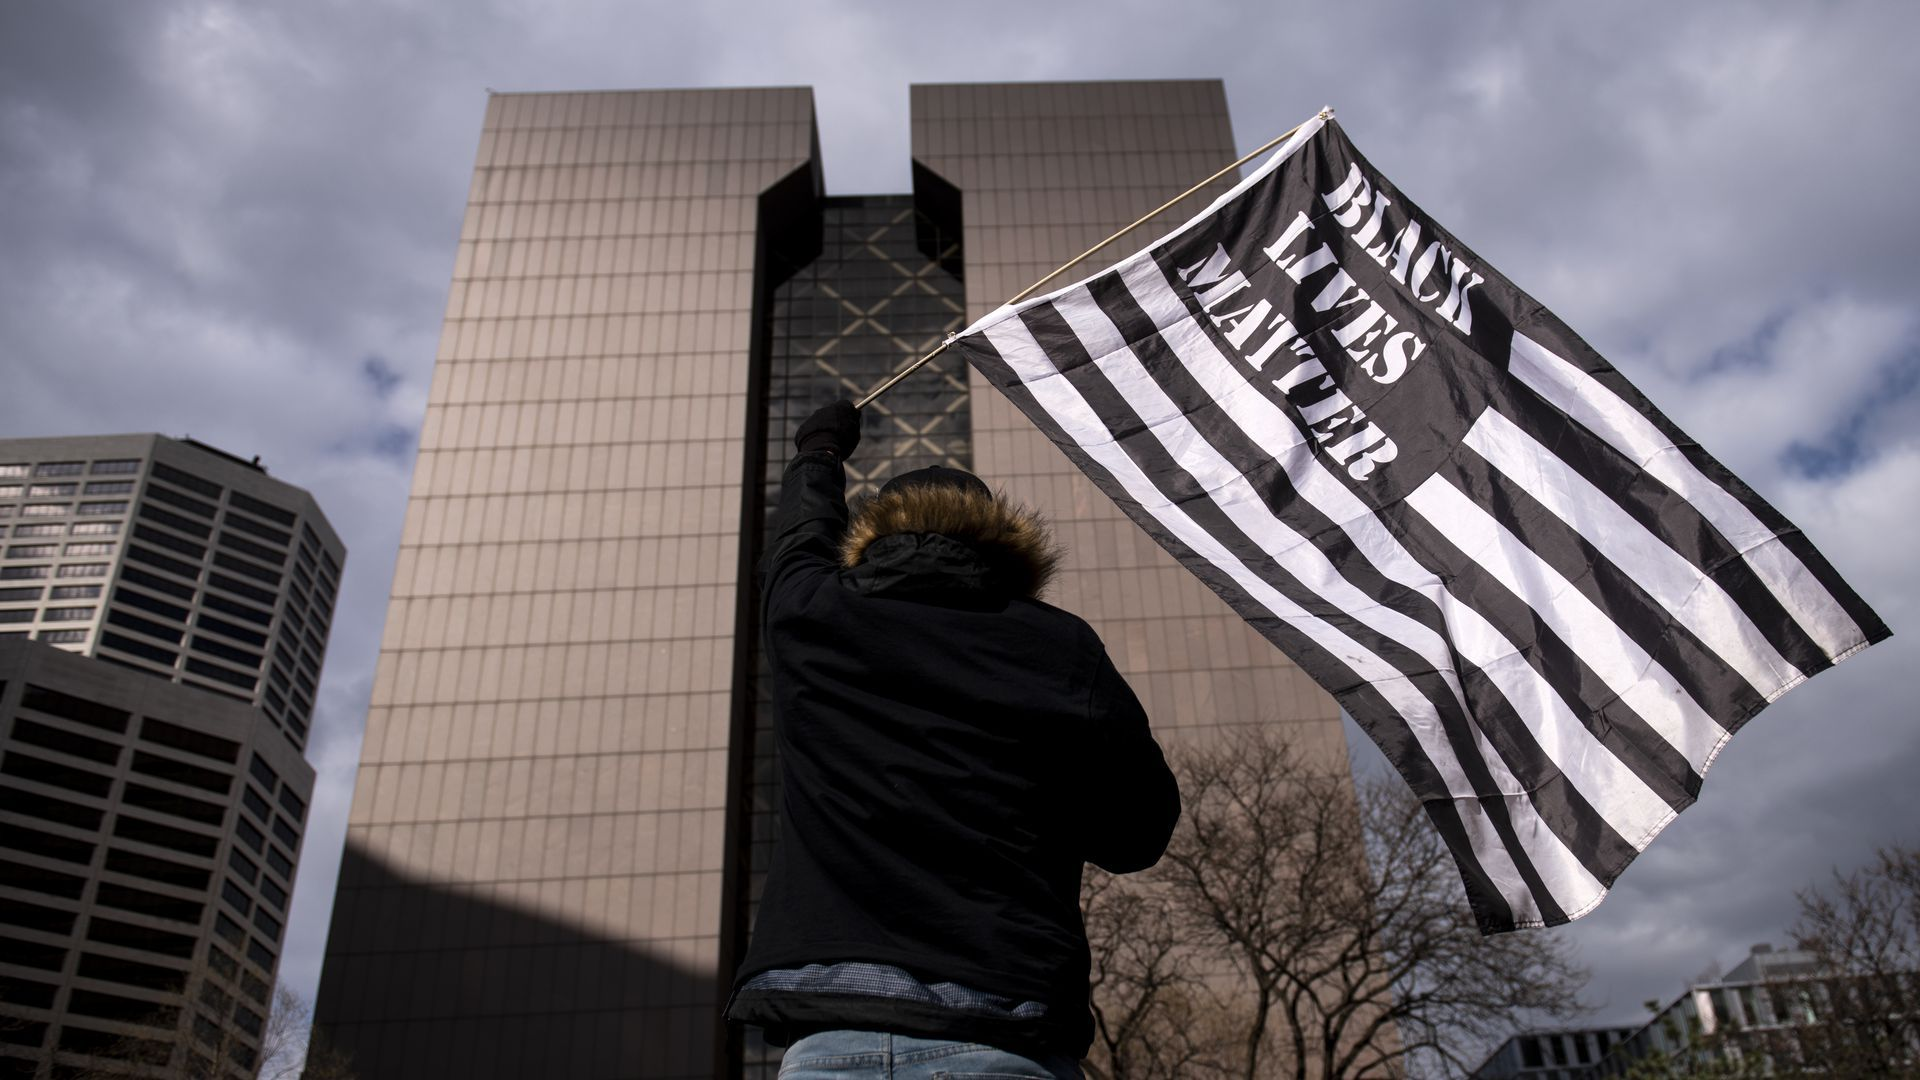 Protester waving flag in front of Hennepin County courthouse